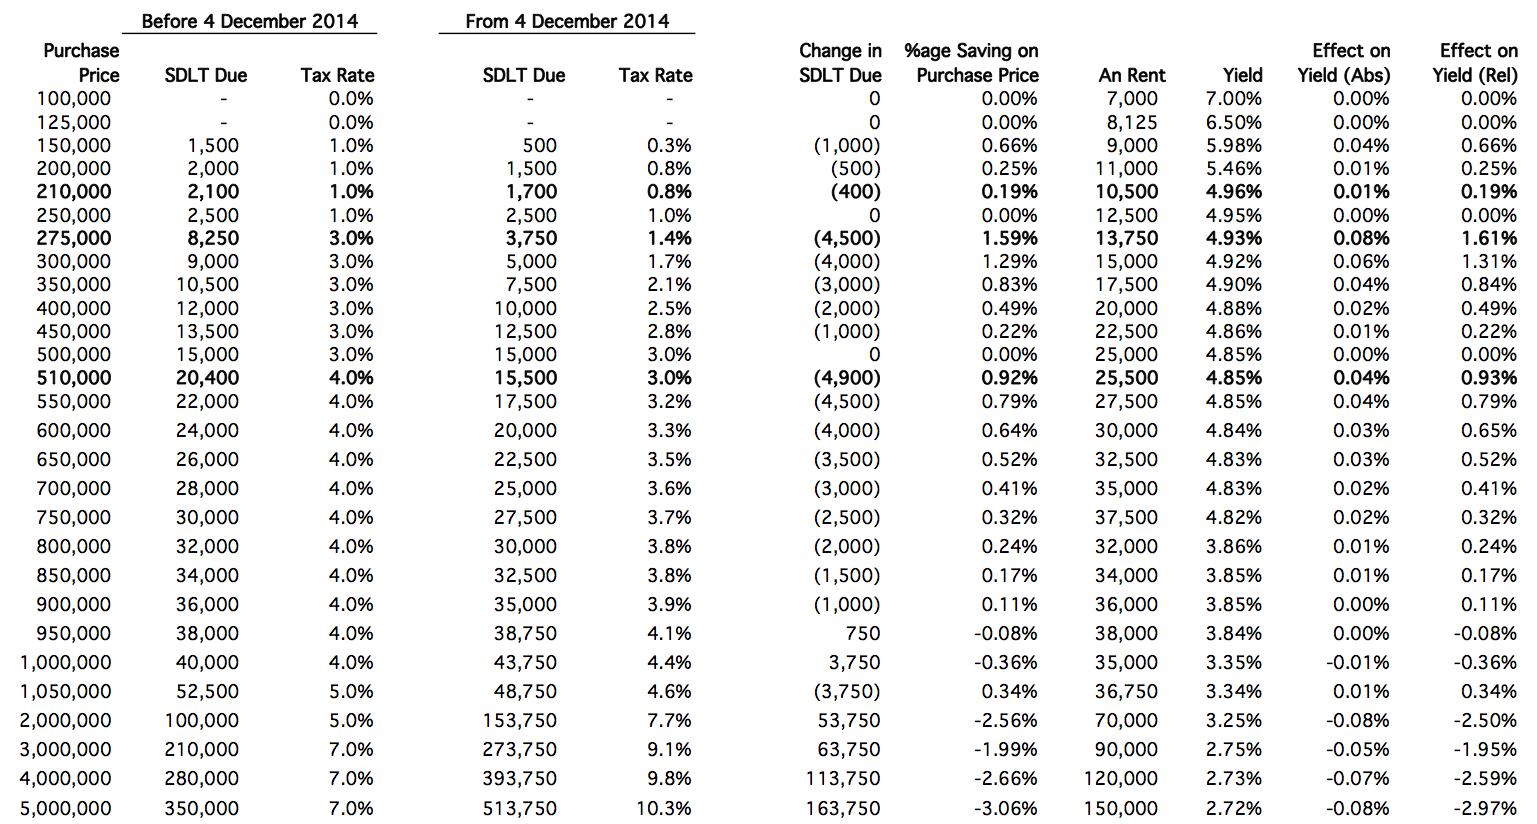 2014 Stamp Duty Analysis Table